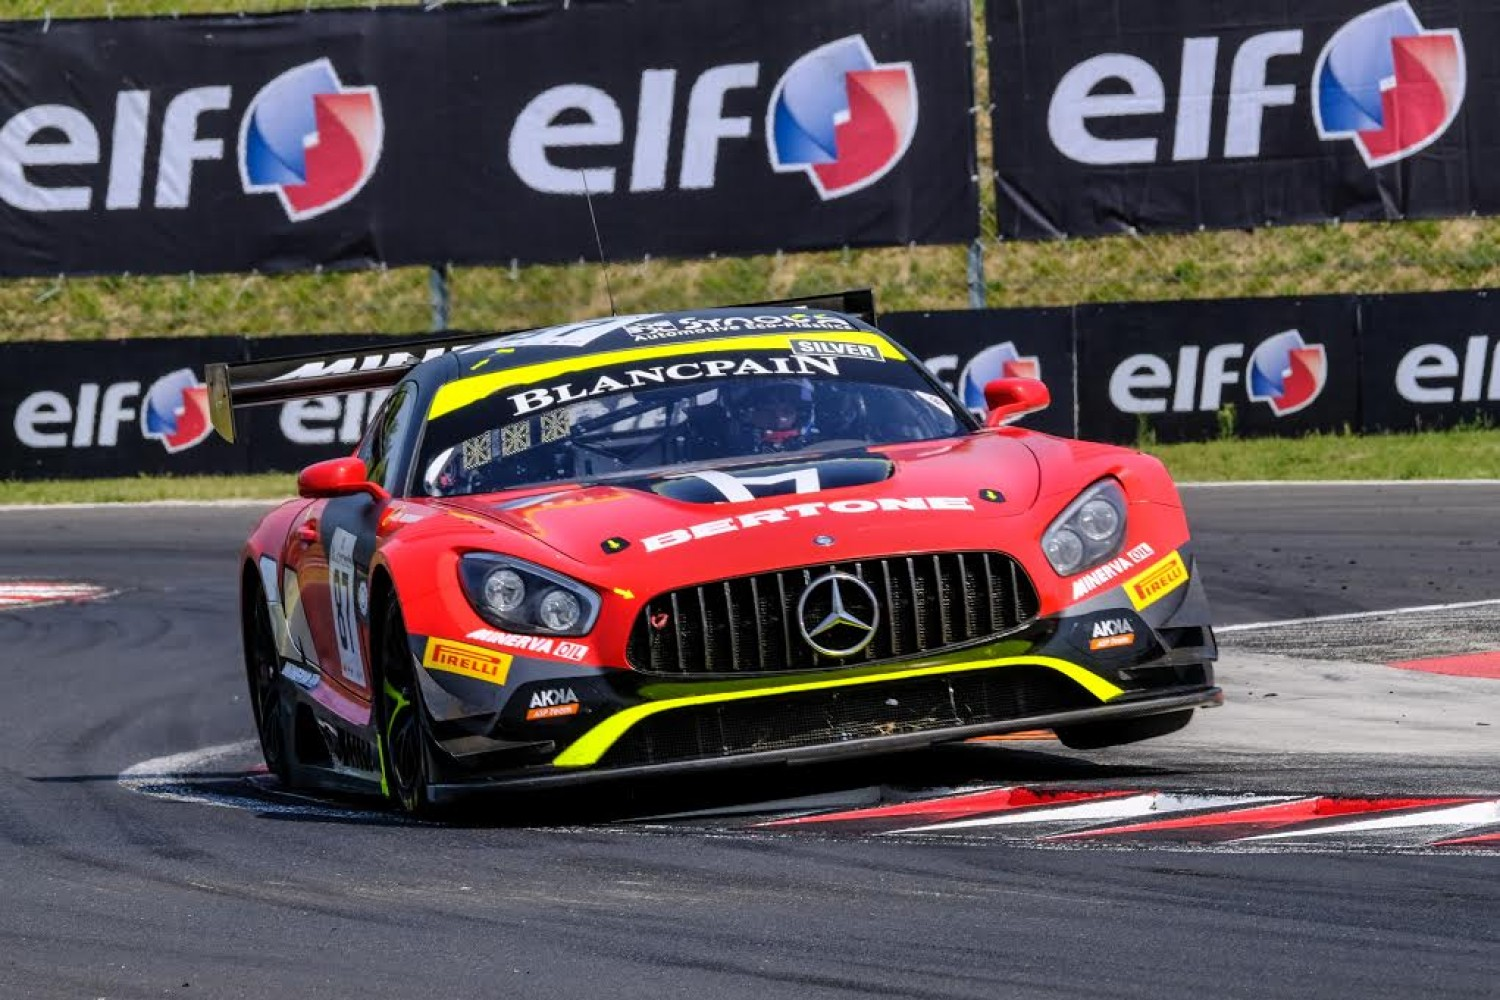 Jamin puts AKKA-Mercedes on top in opening practice at Hungaroring